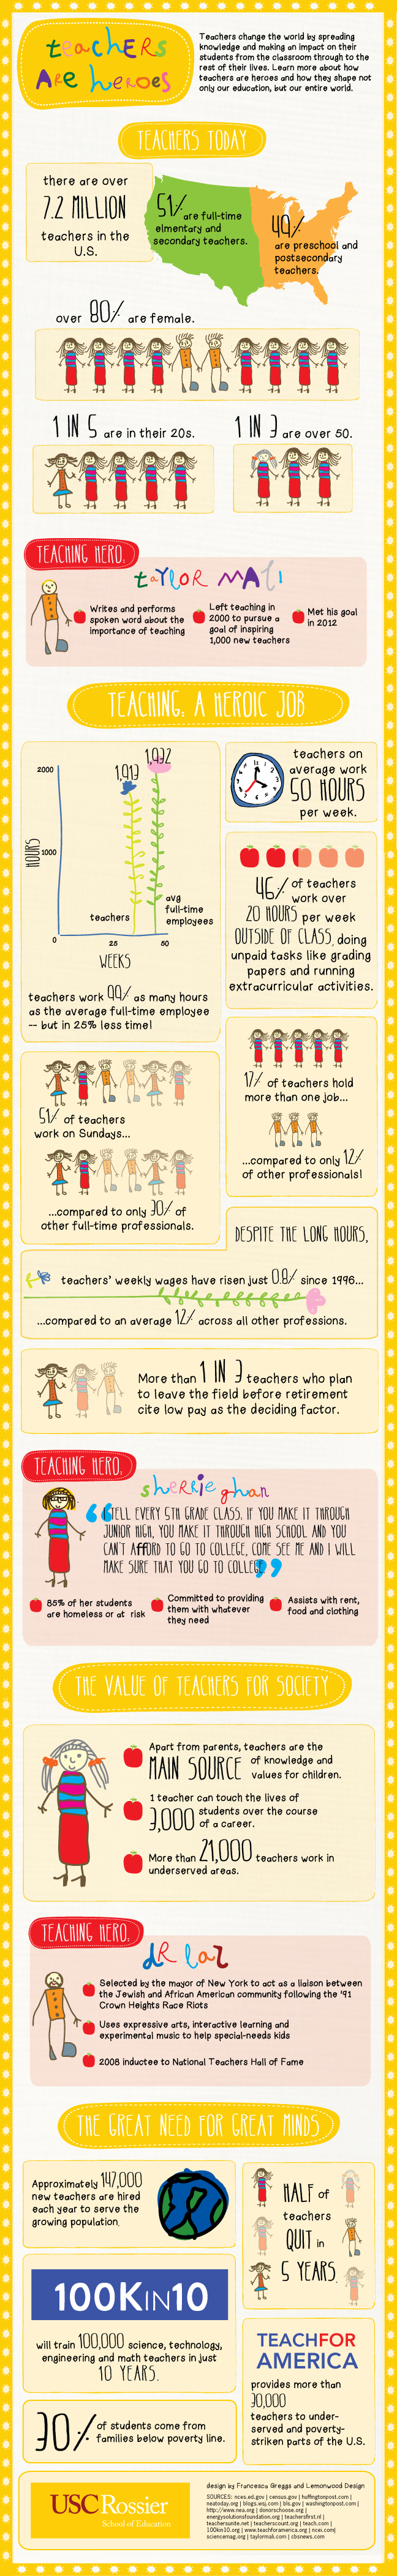 Teachers are Heroes [INFOGRAPHIC]